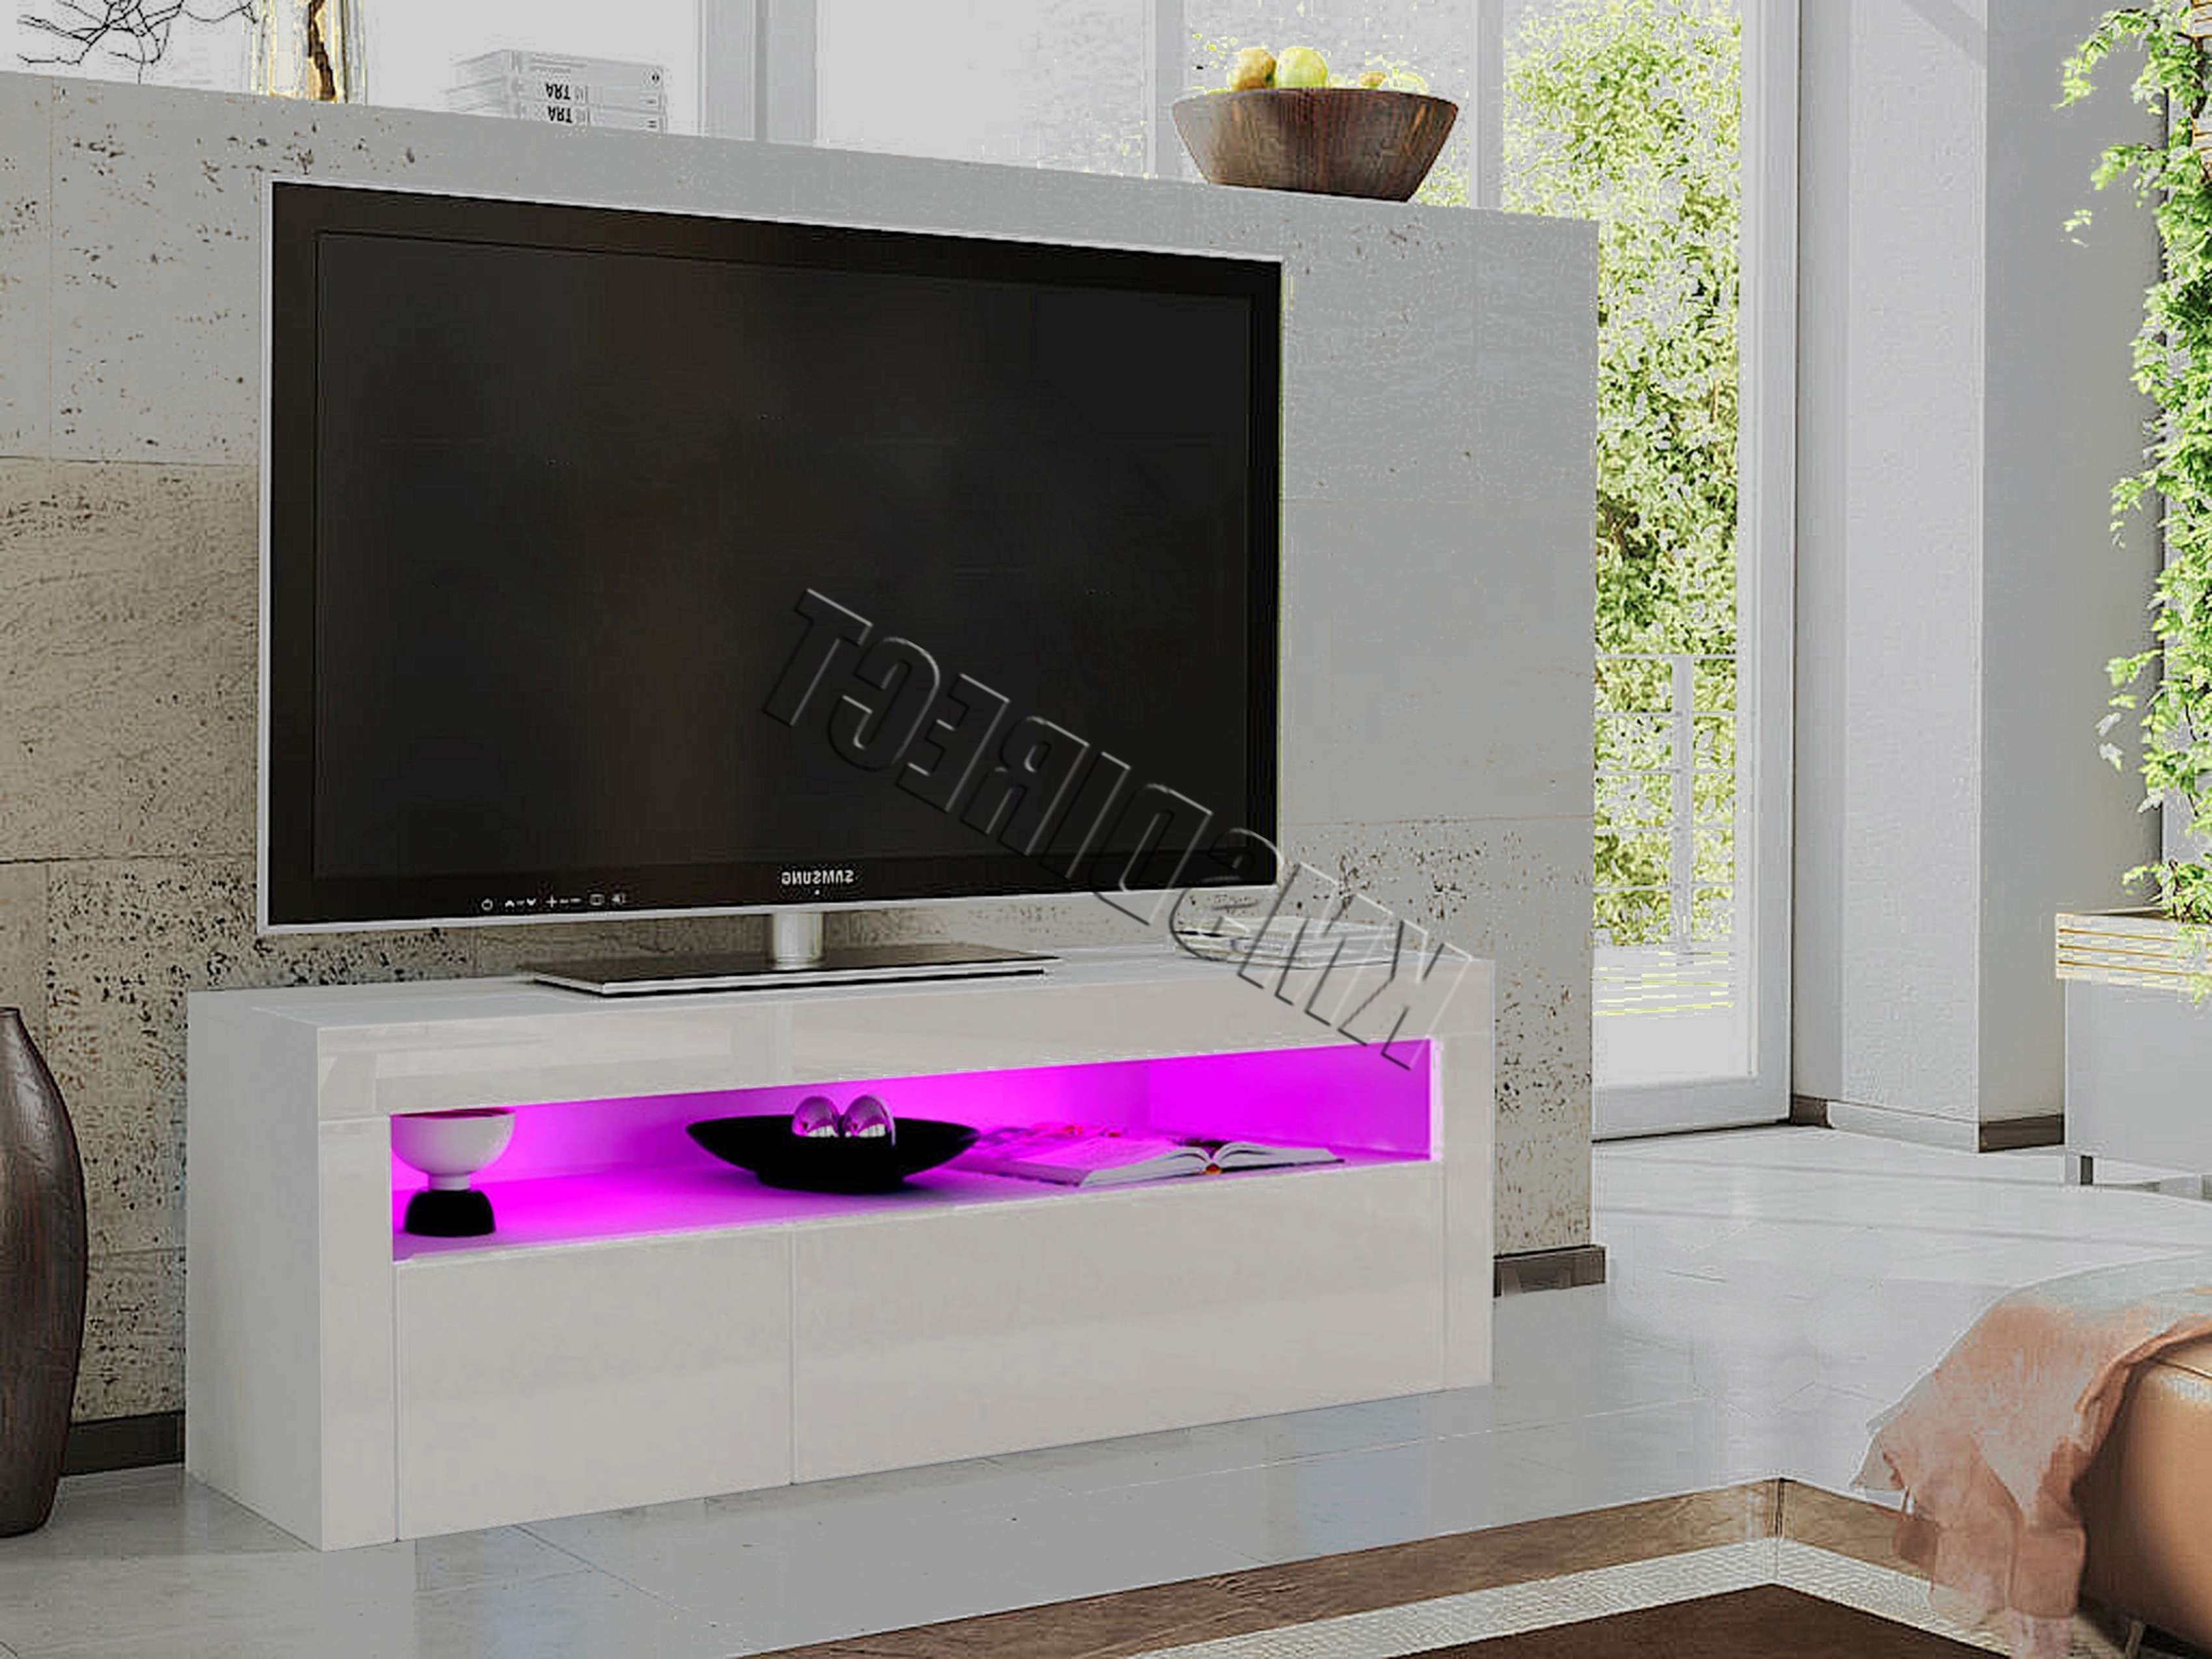 Foxhunter Modern High Gloss Matt Tv Cabinet Unit Stand White Rgb Regarding High Gloss Tv Cabinets (View 4 of 20)